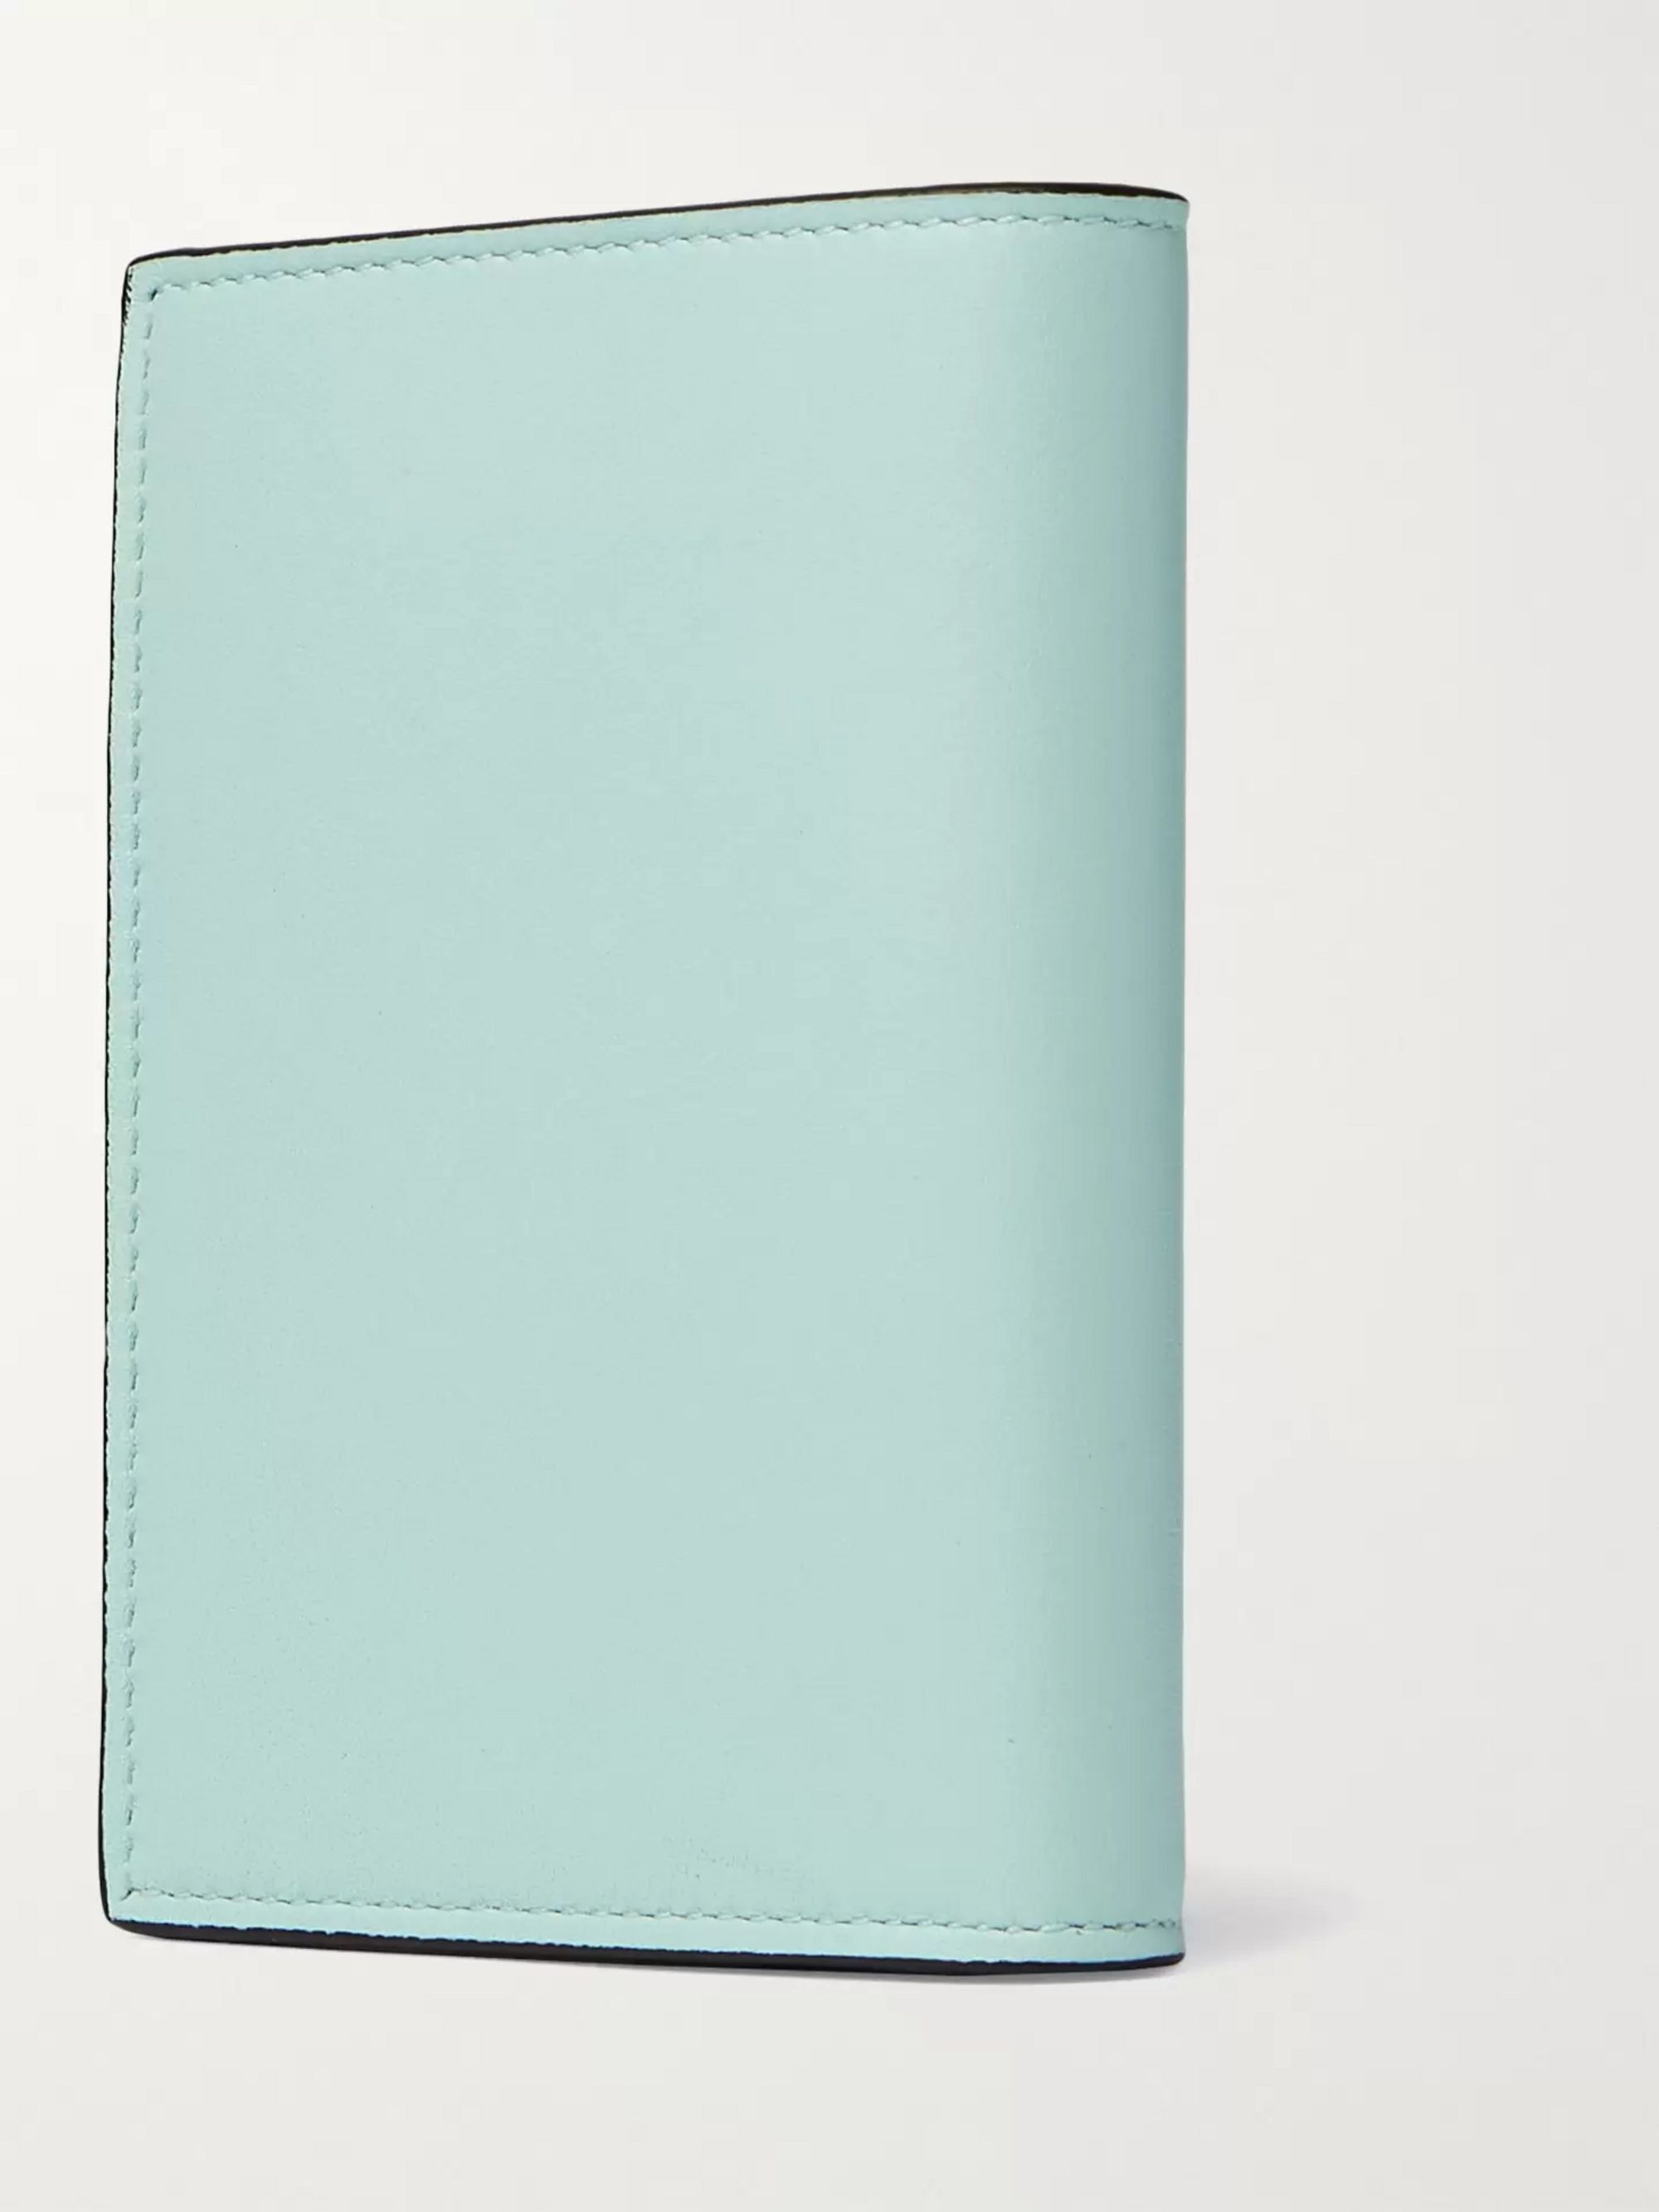 LOEWE + Ken Price Printed Leather Billfold Wallet